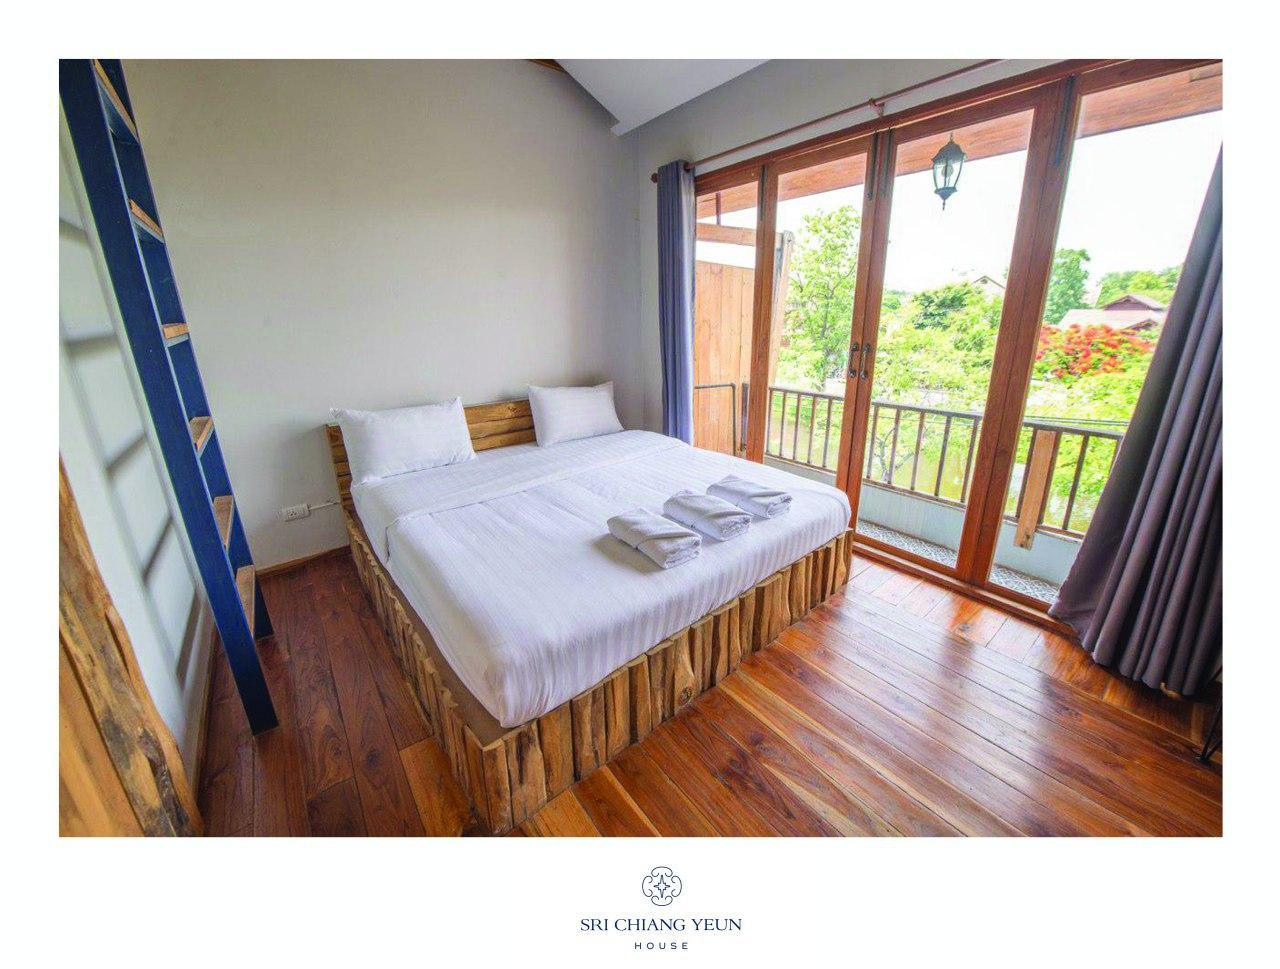 Sri Chiang Yeun House Guesthouse Bed And Breakfast Chiang